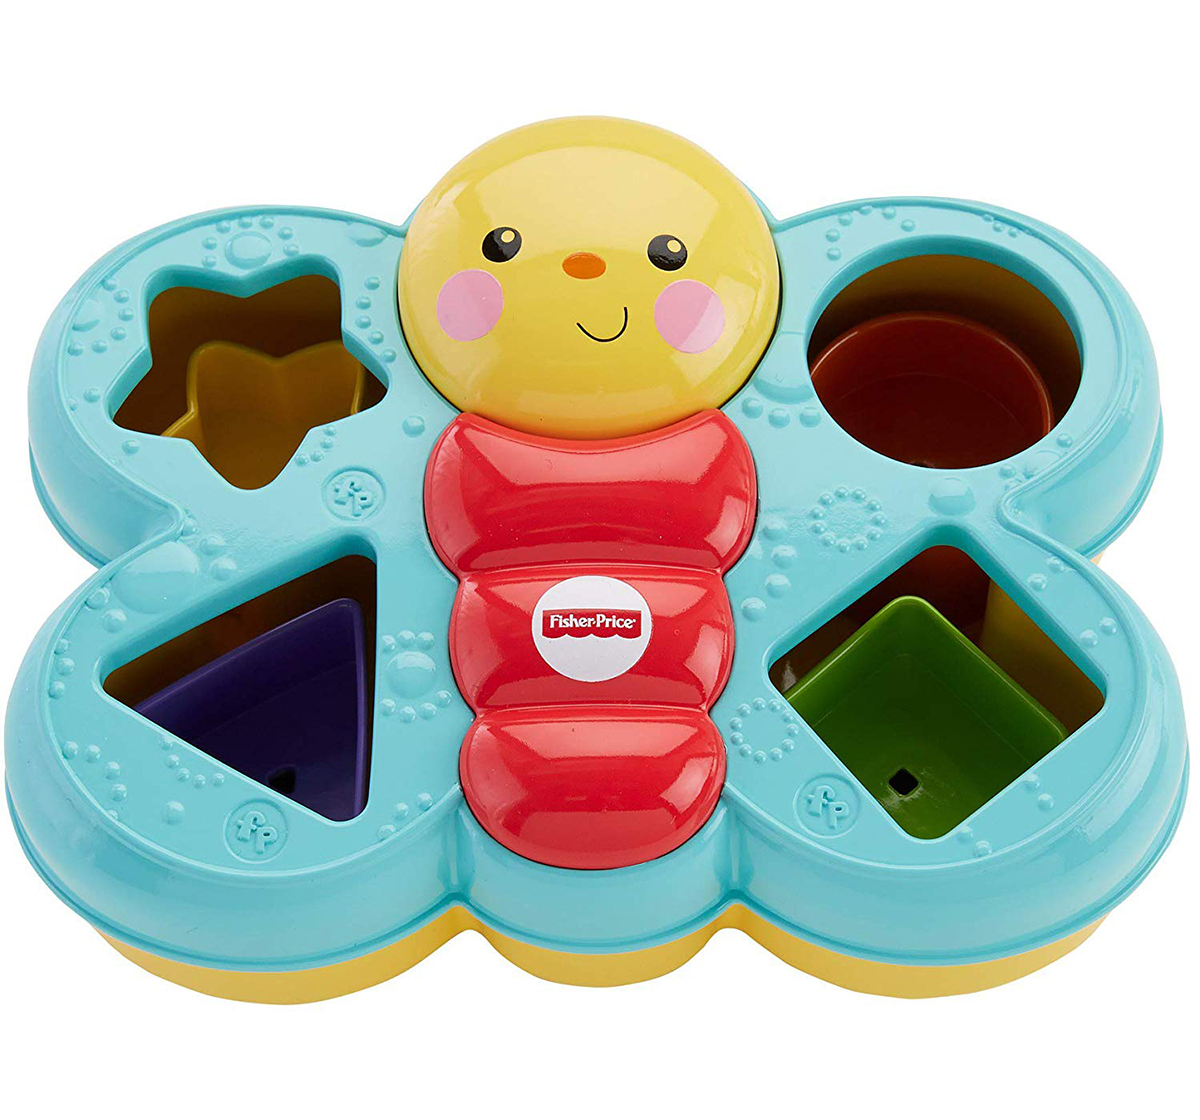 Fisher-Price   Fisher Price Sort N Spill Butterfly Activity Toys for Kids age 6M+